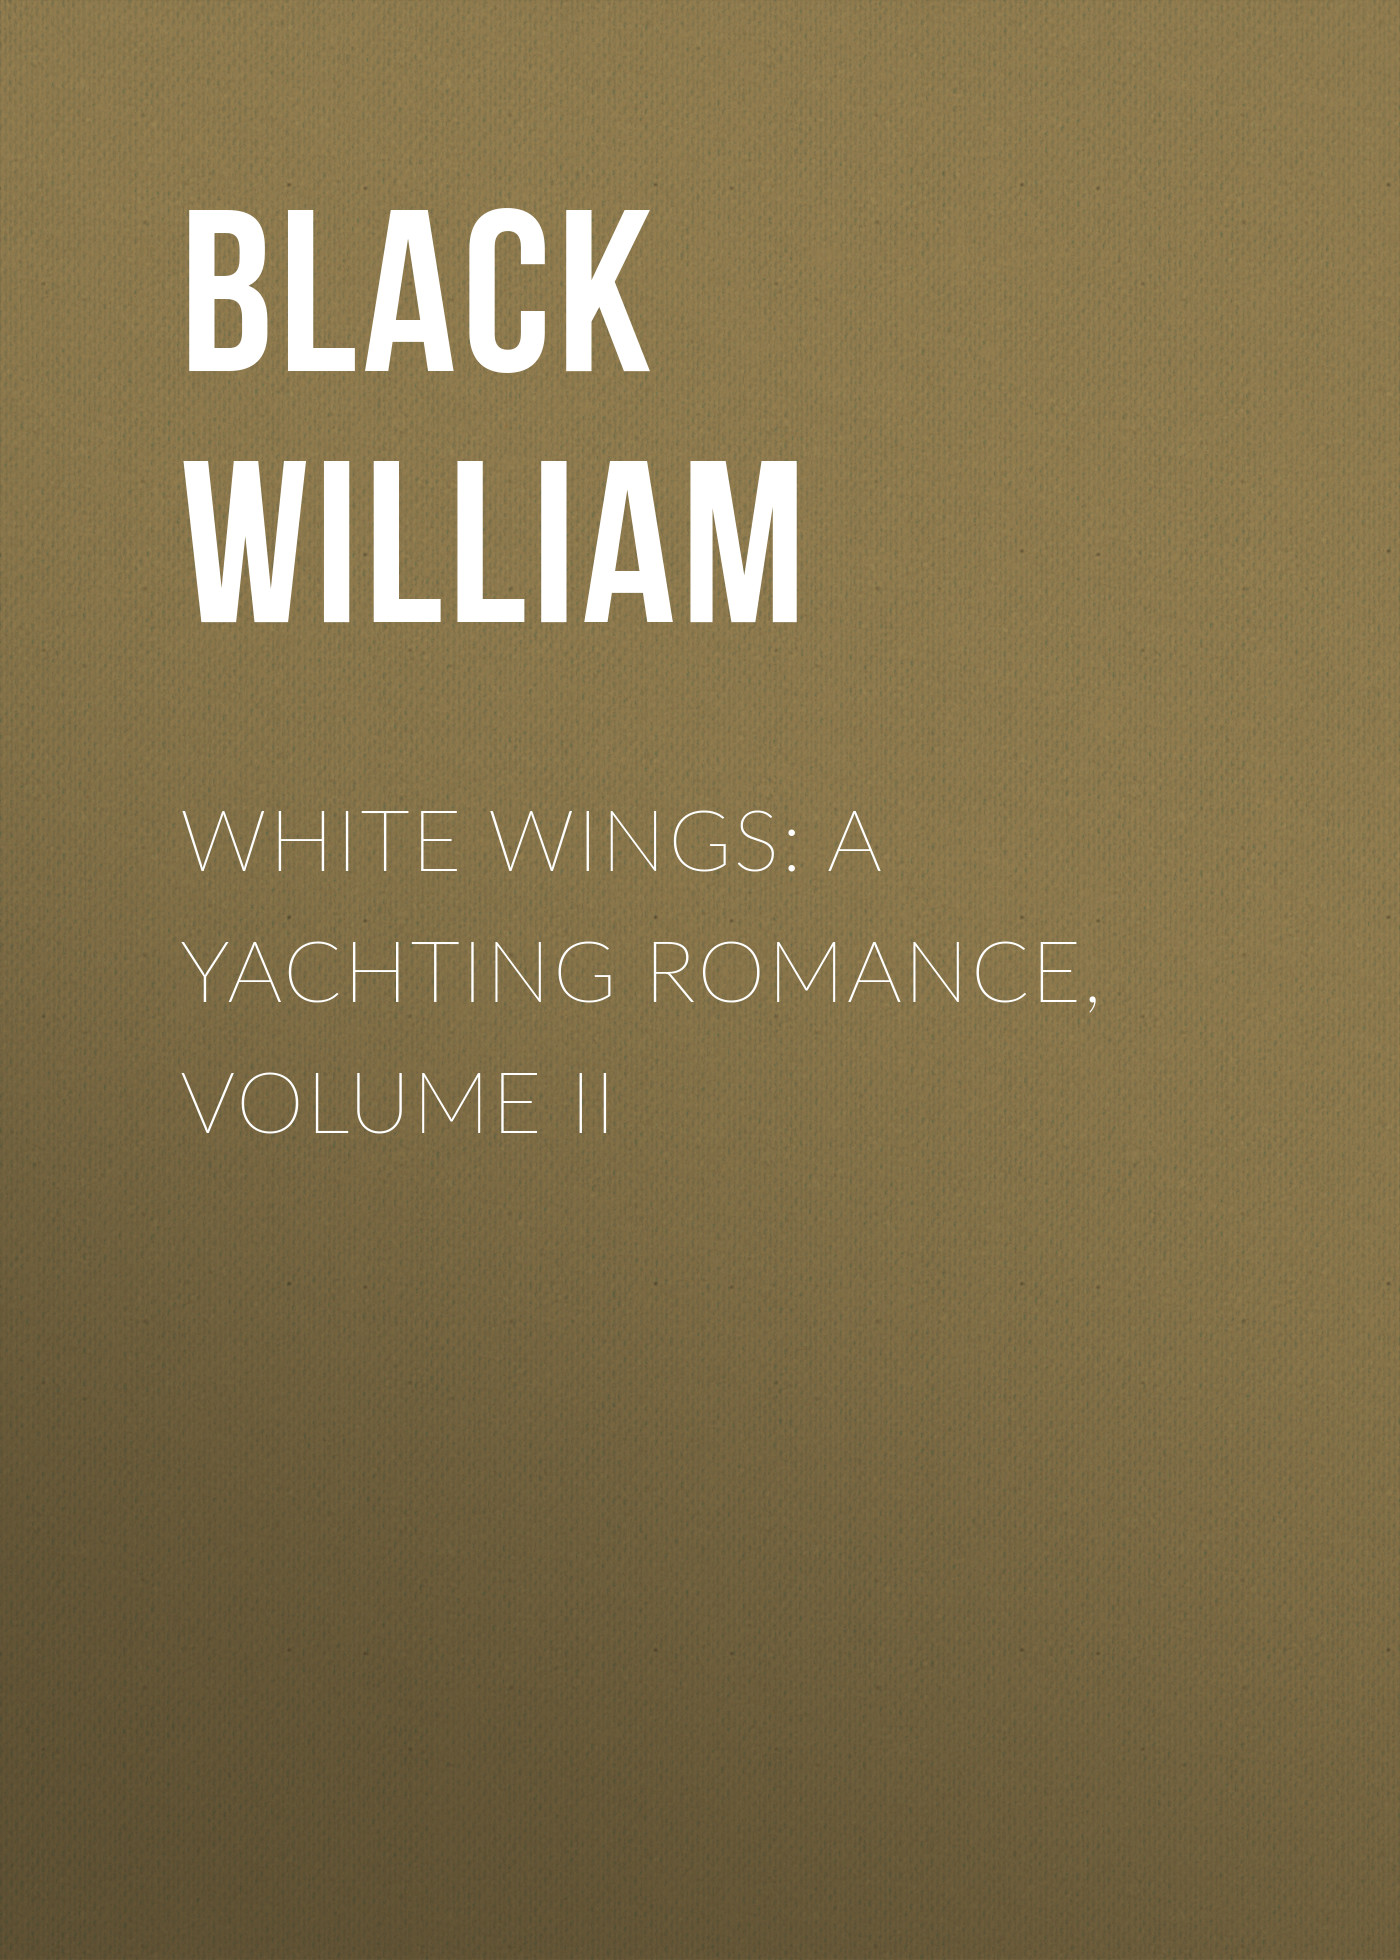 Black William White Wings: A Yachting Romance, Volume II friedrich von schiller die räuber